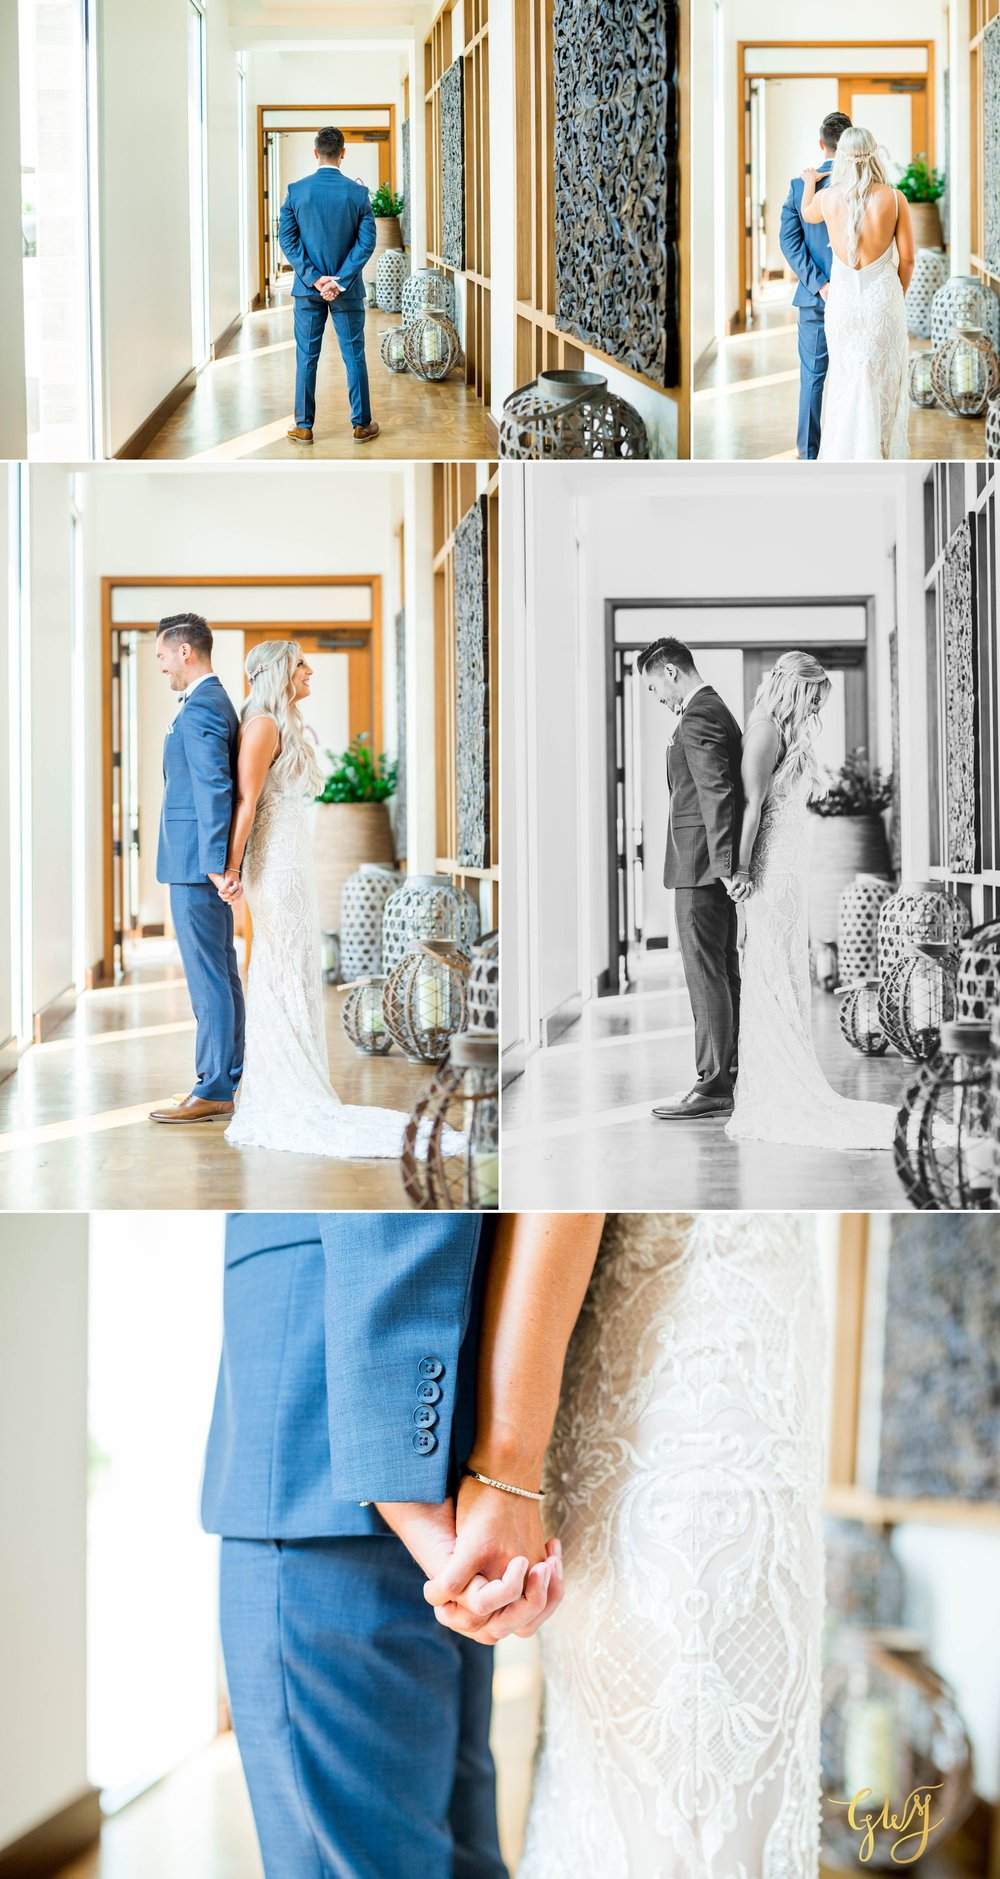 Christien + Crystal Pasea Hotel & Spa Huntington Beach Wedding by Glass Woods Media 26.jpg